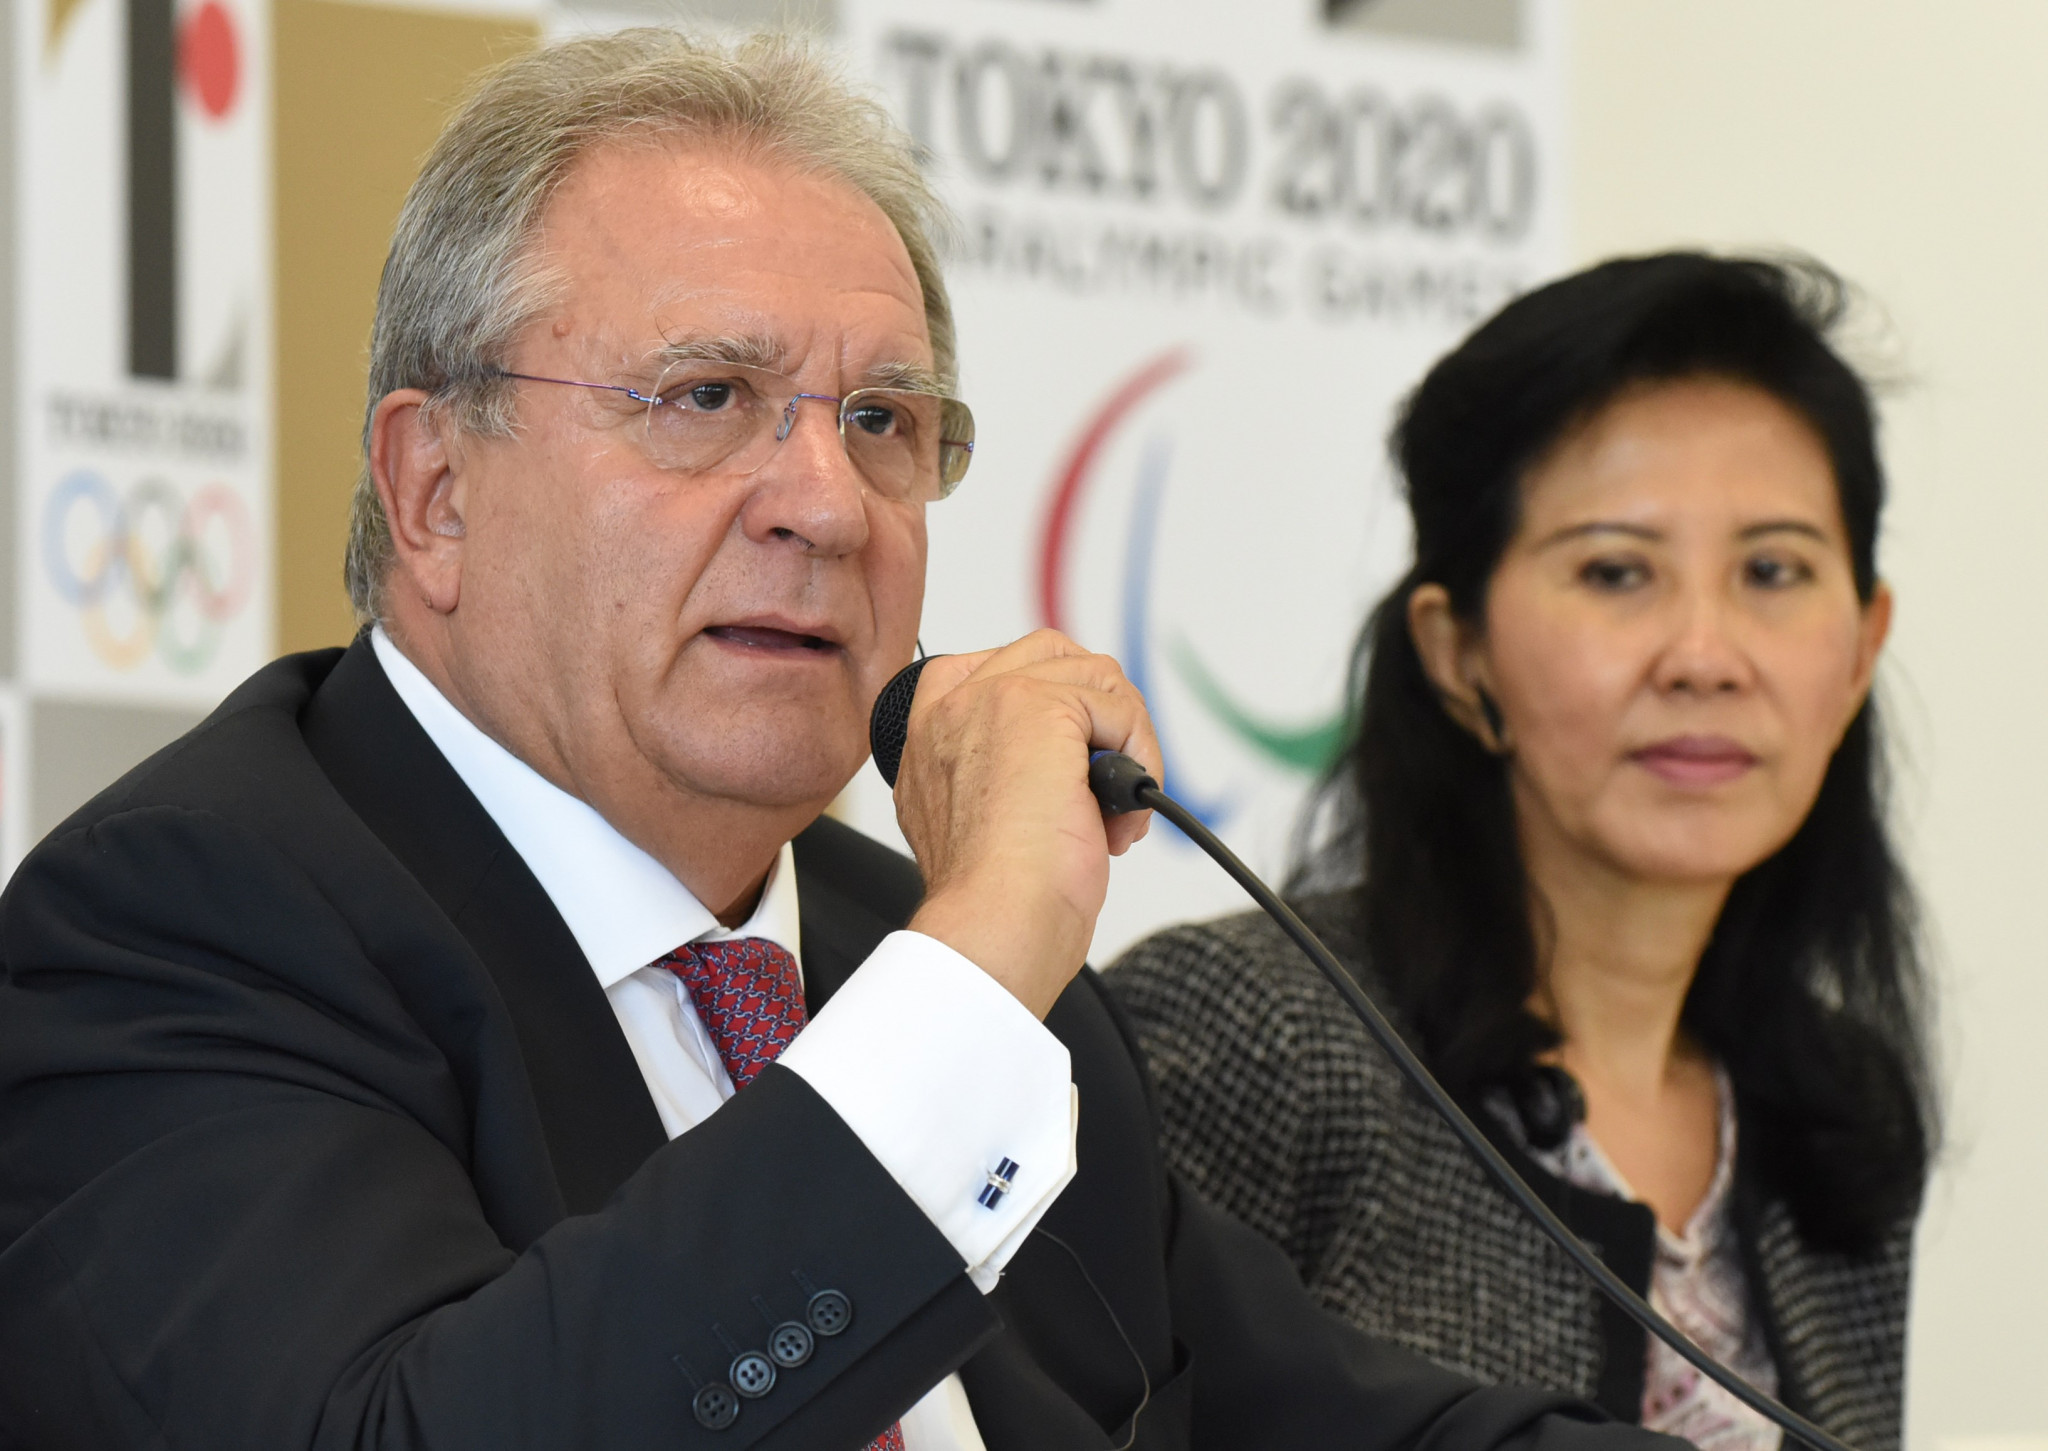 WBSC President Fraccari receives Italian National Olympic Committee's highest honour